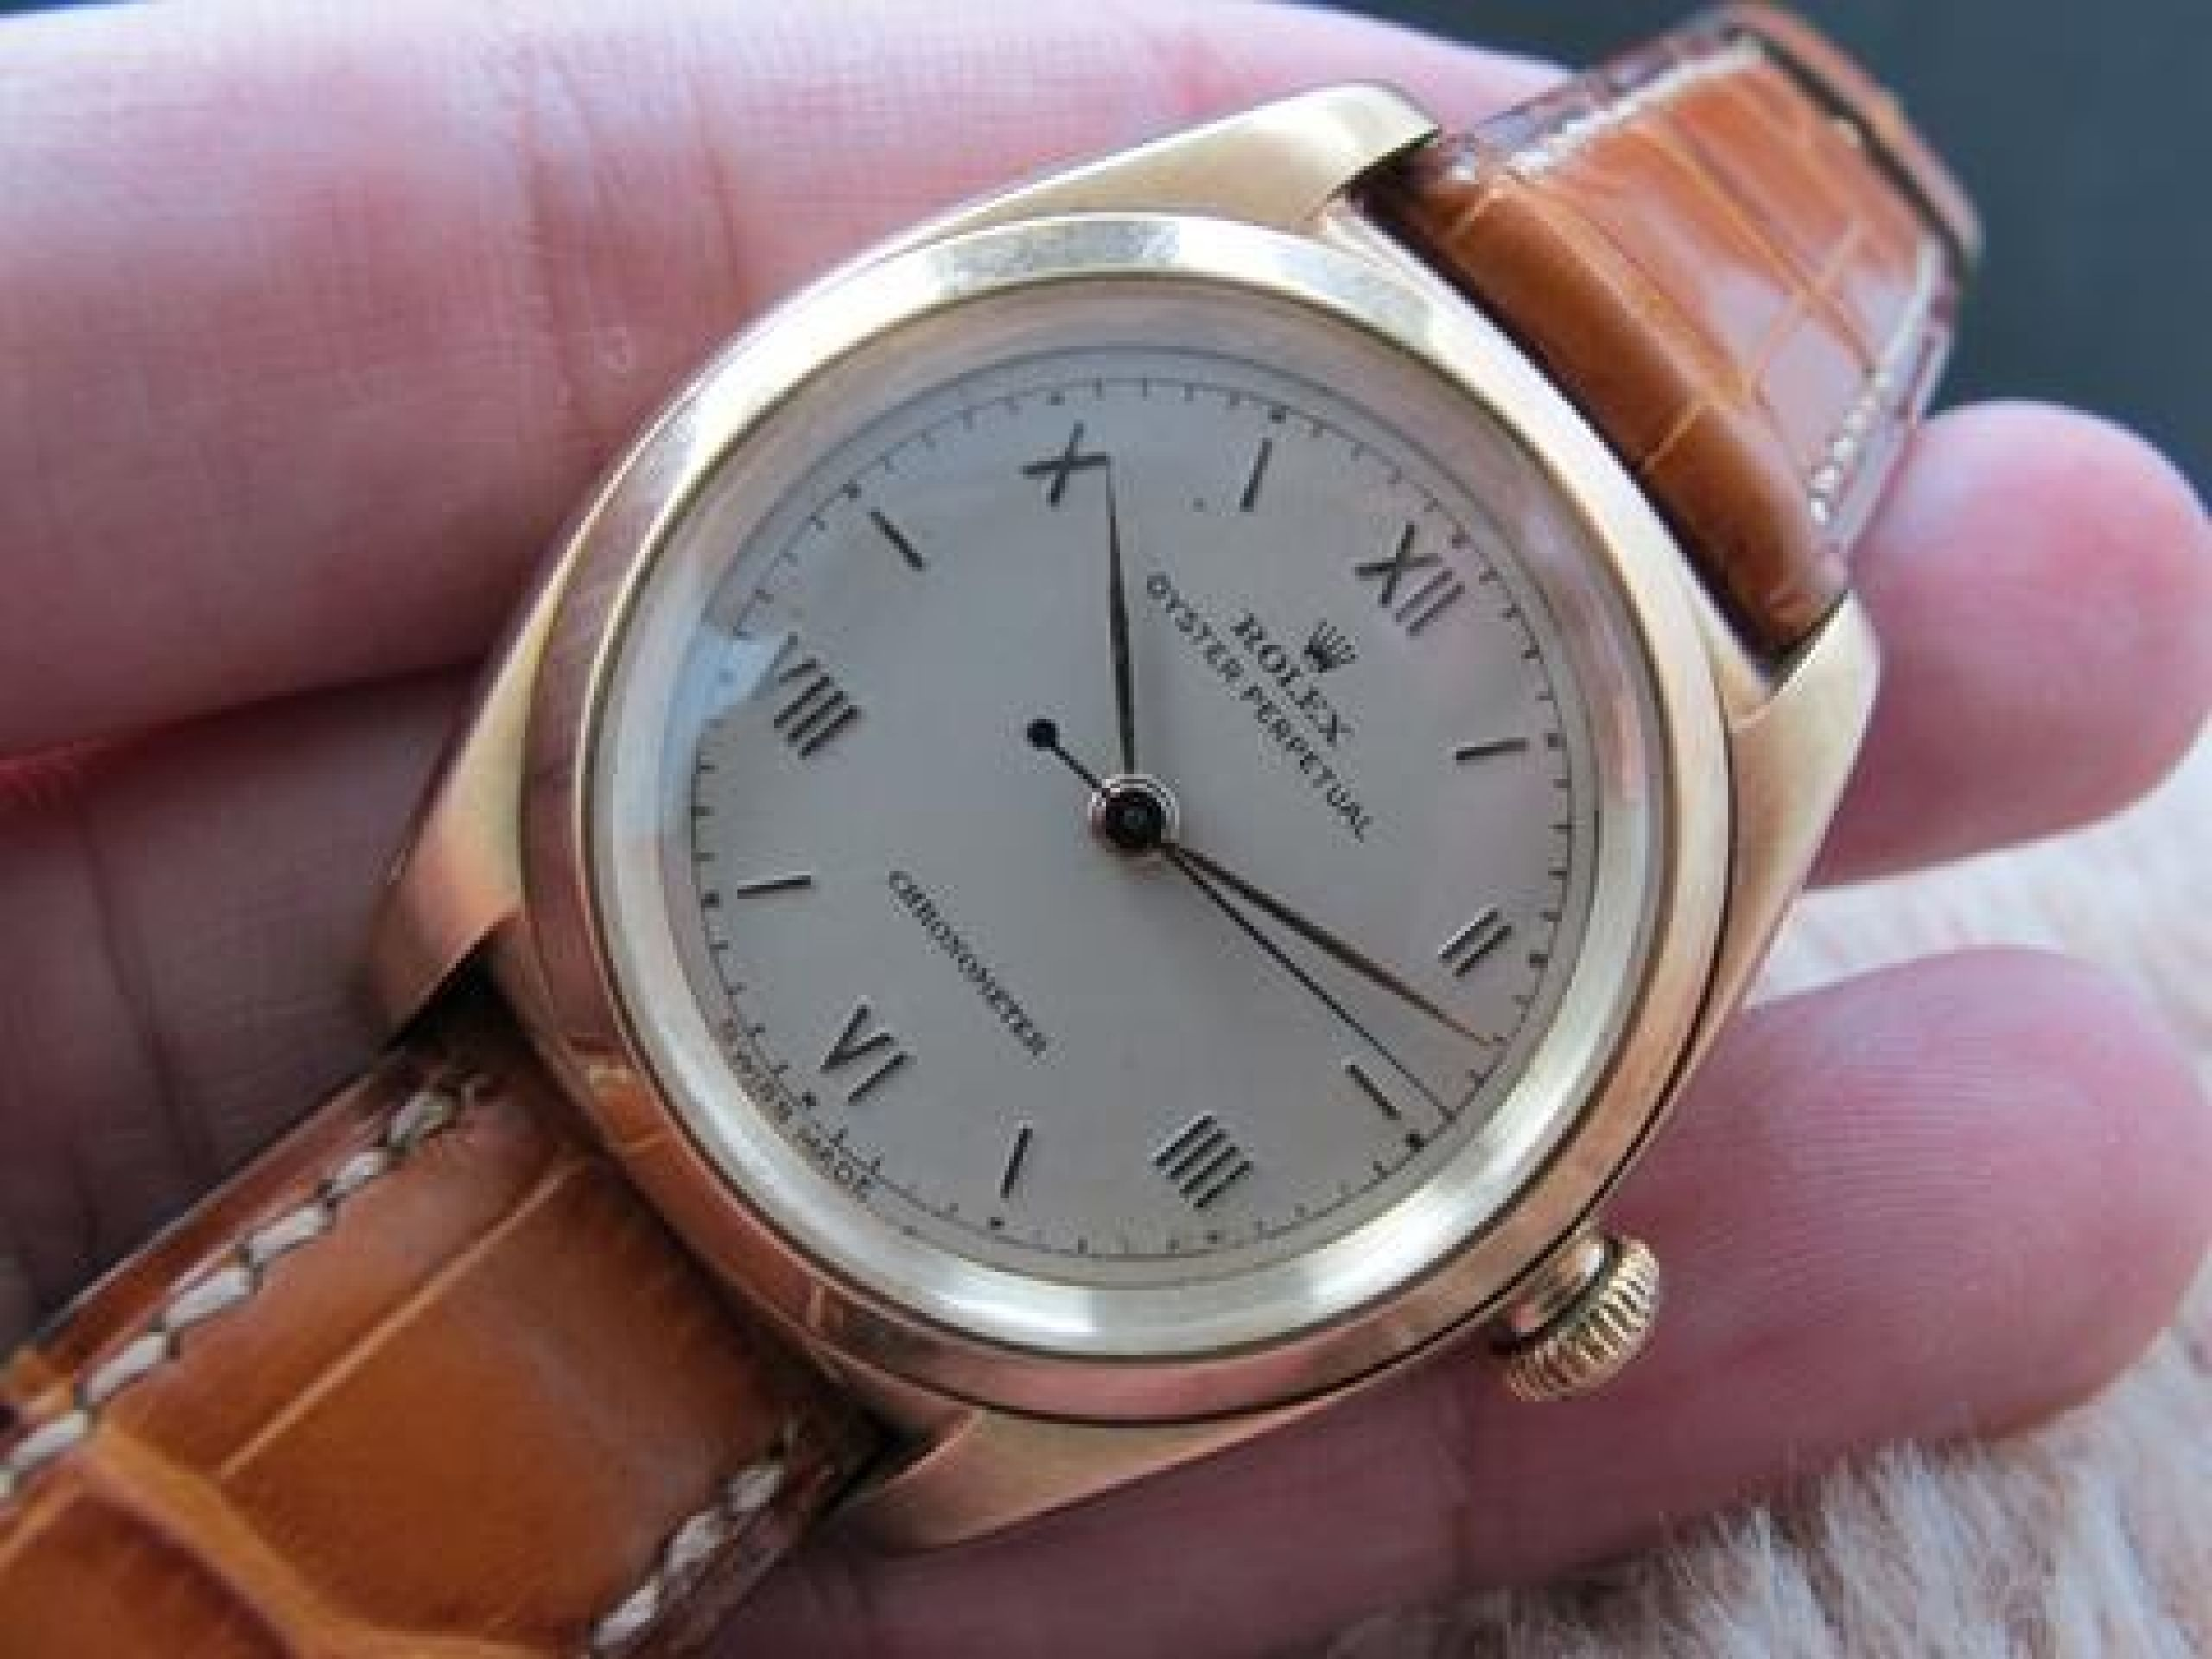 1947 ROLEX BUBBLEBACK 3131 14K YELLOW GOLD WITH CREAMY RAISED ROMAN DIAL